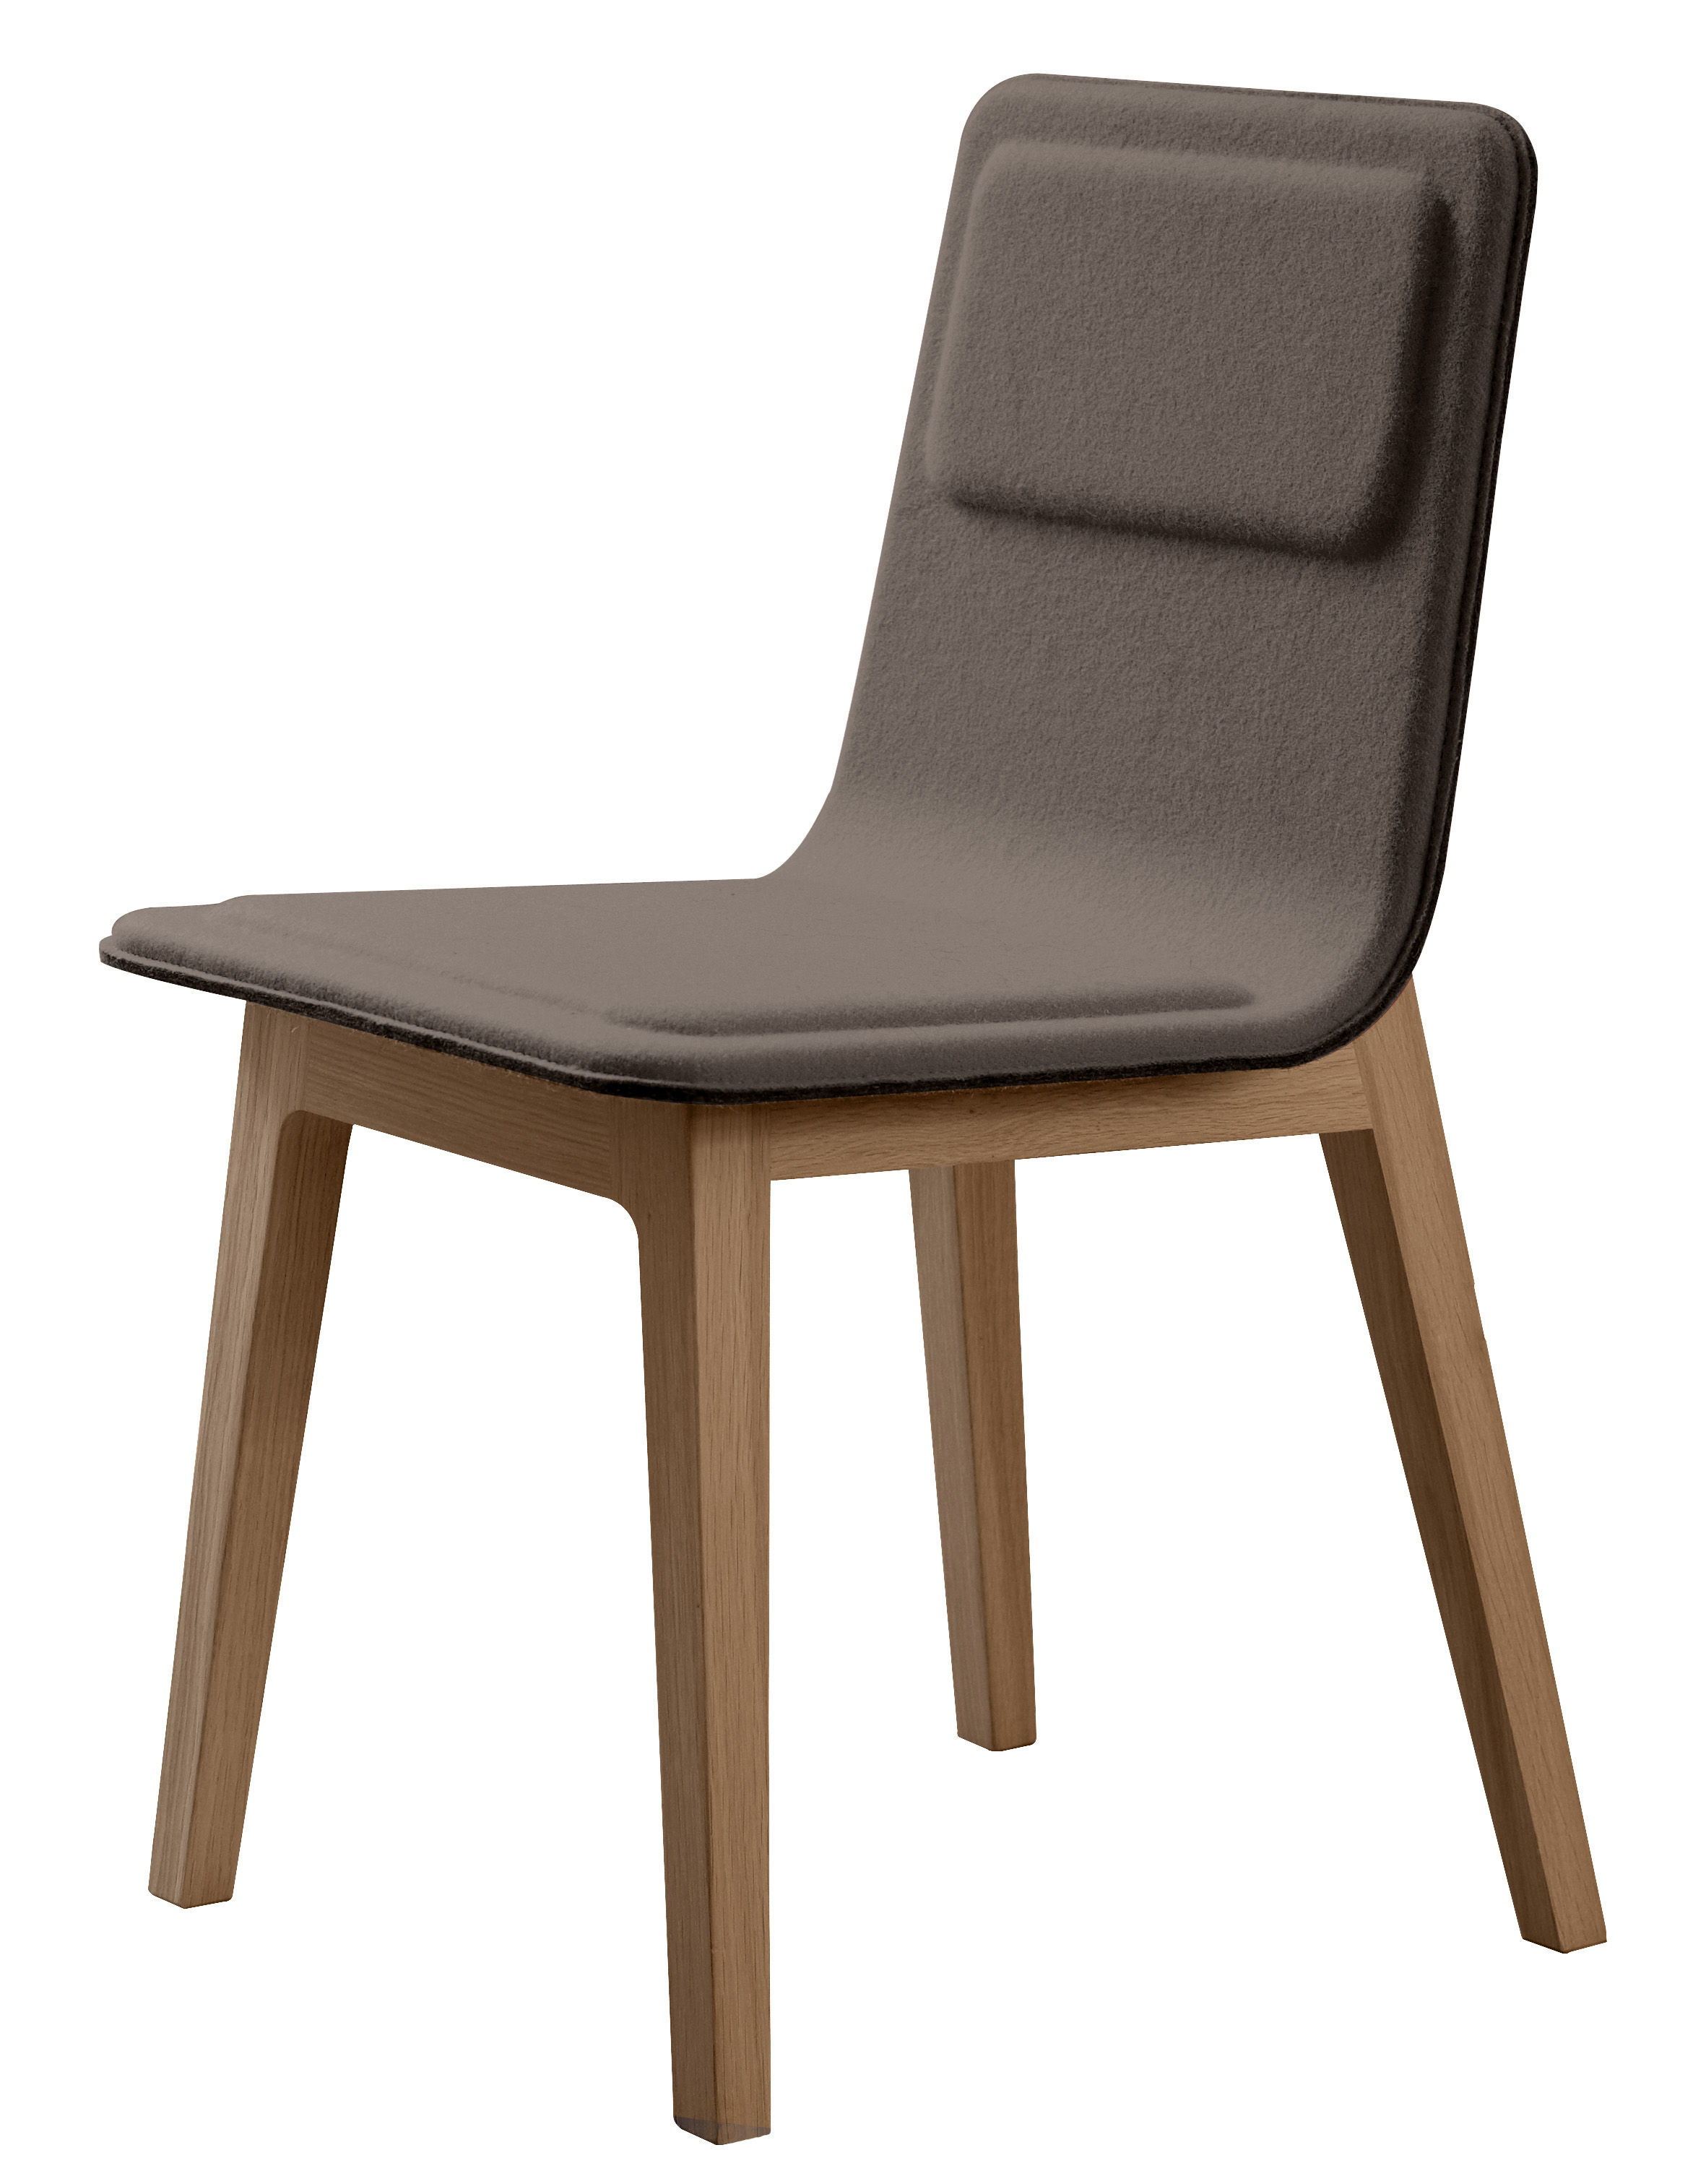 Laia Padded Chair Felt Mole Natural Oak By Alki